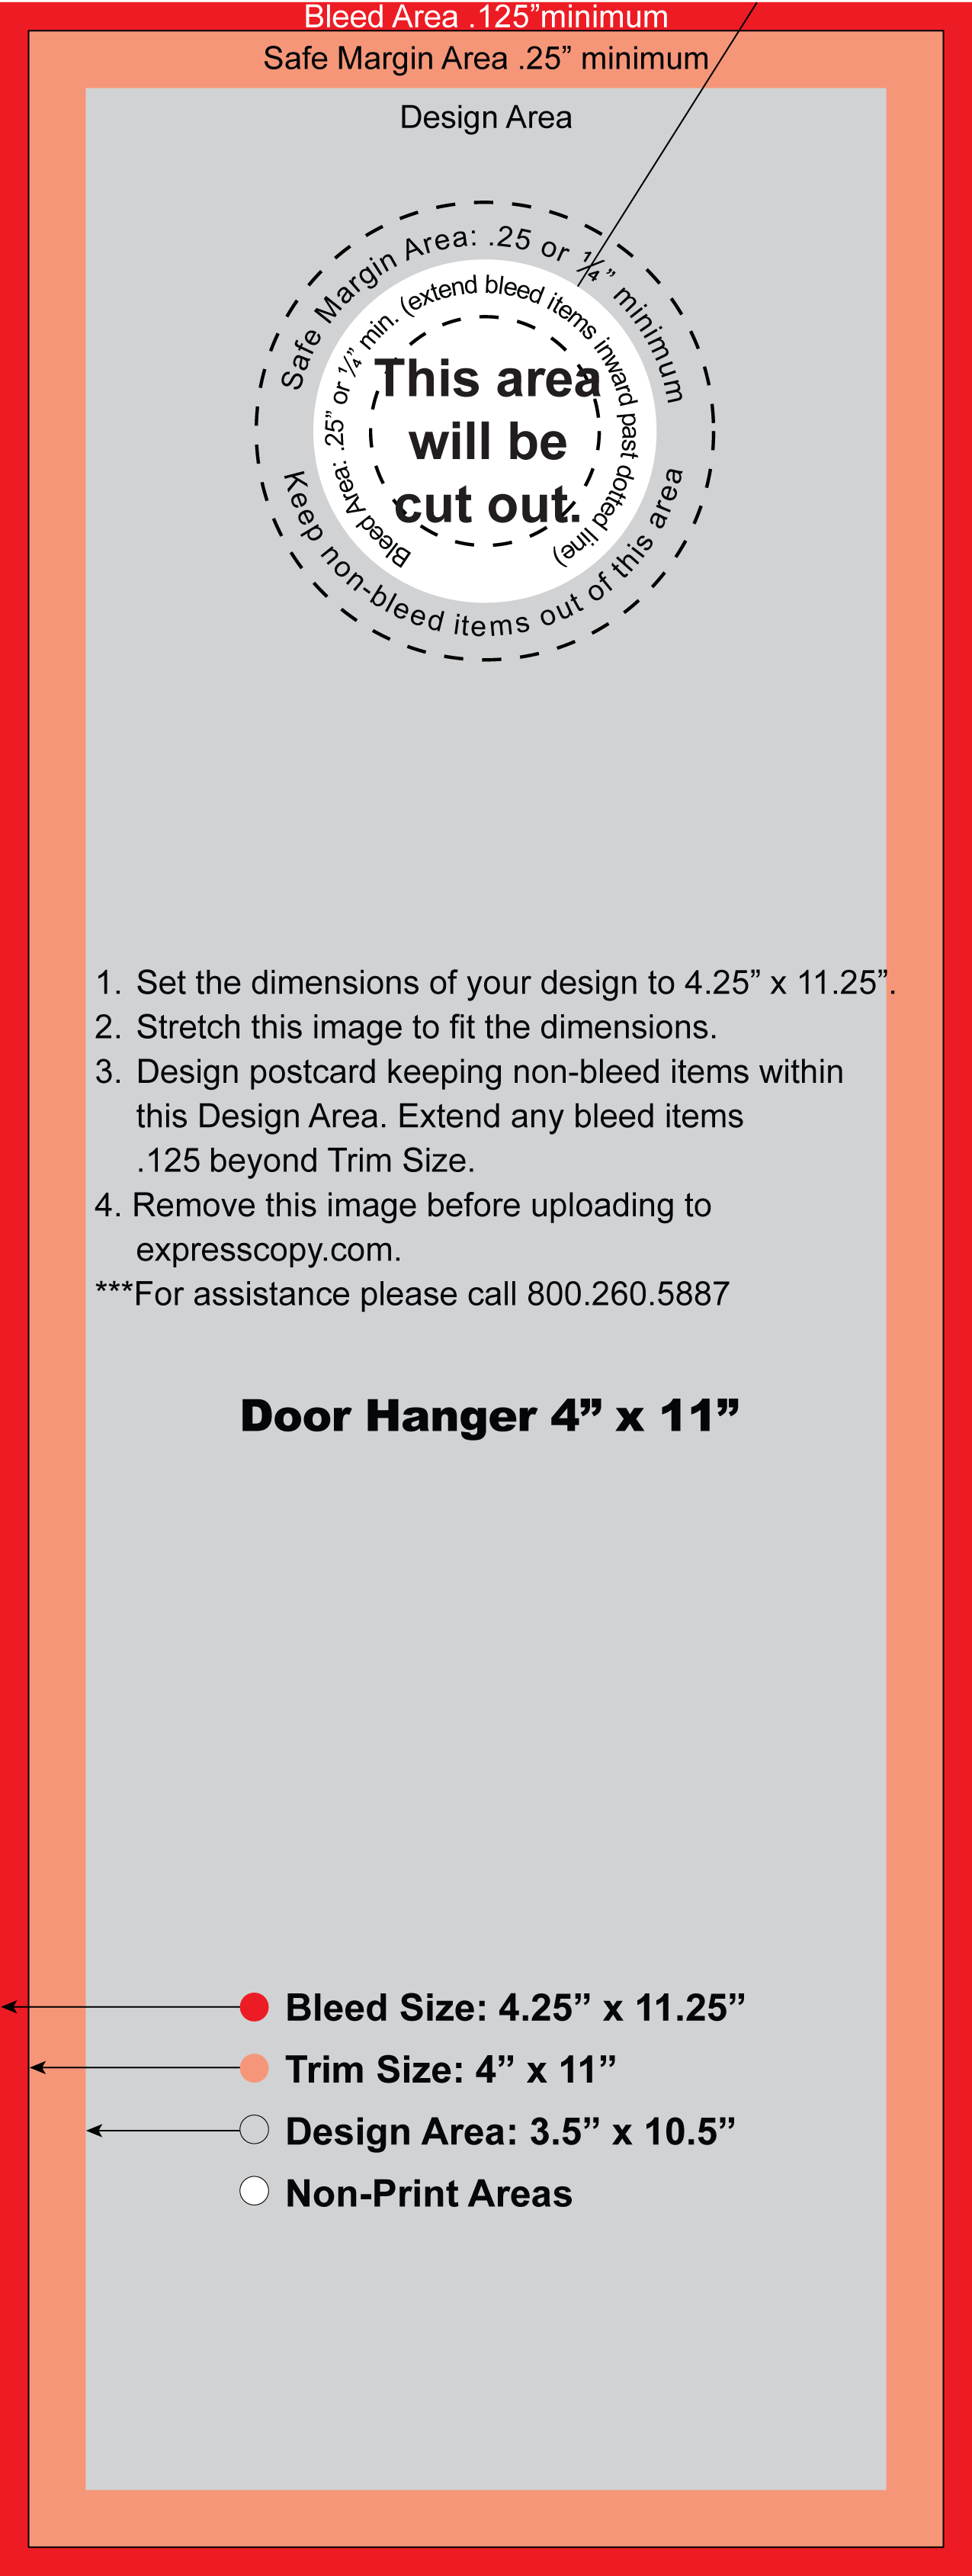 door hanger print specifications